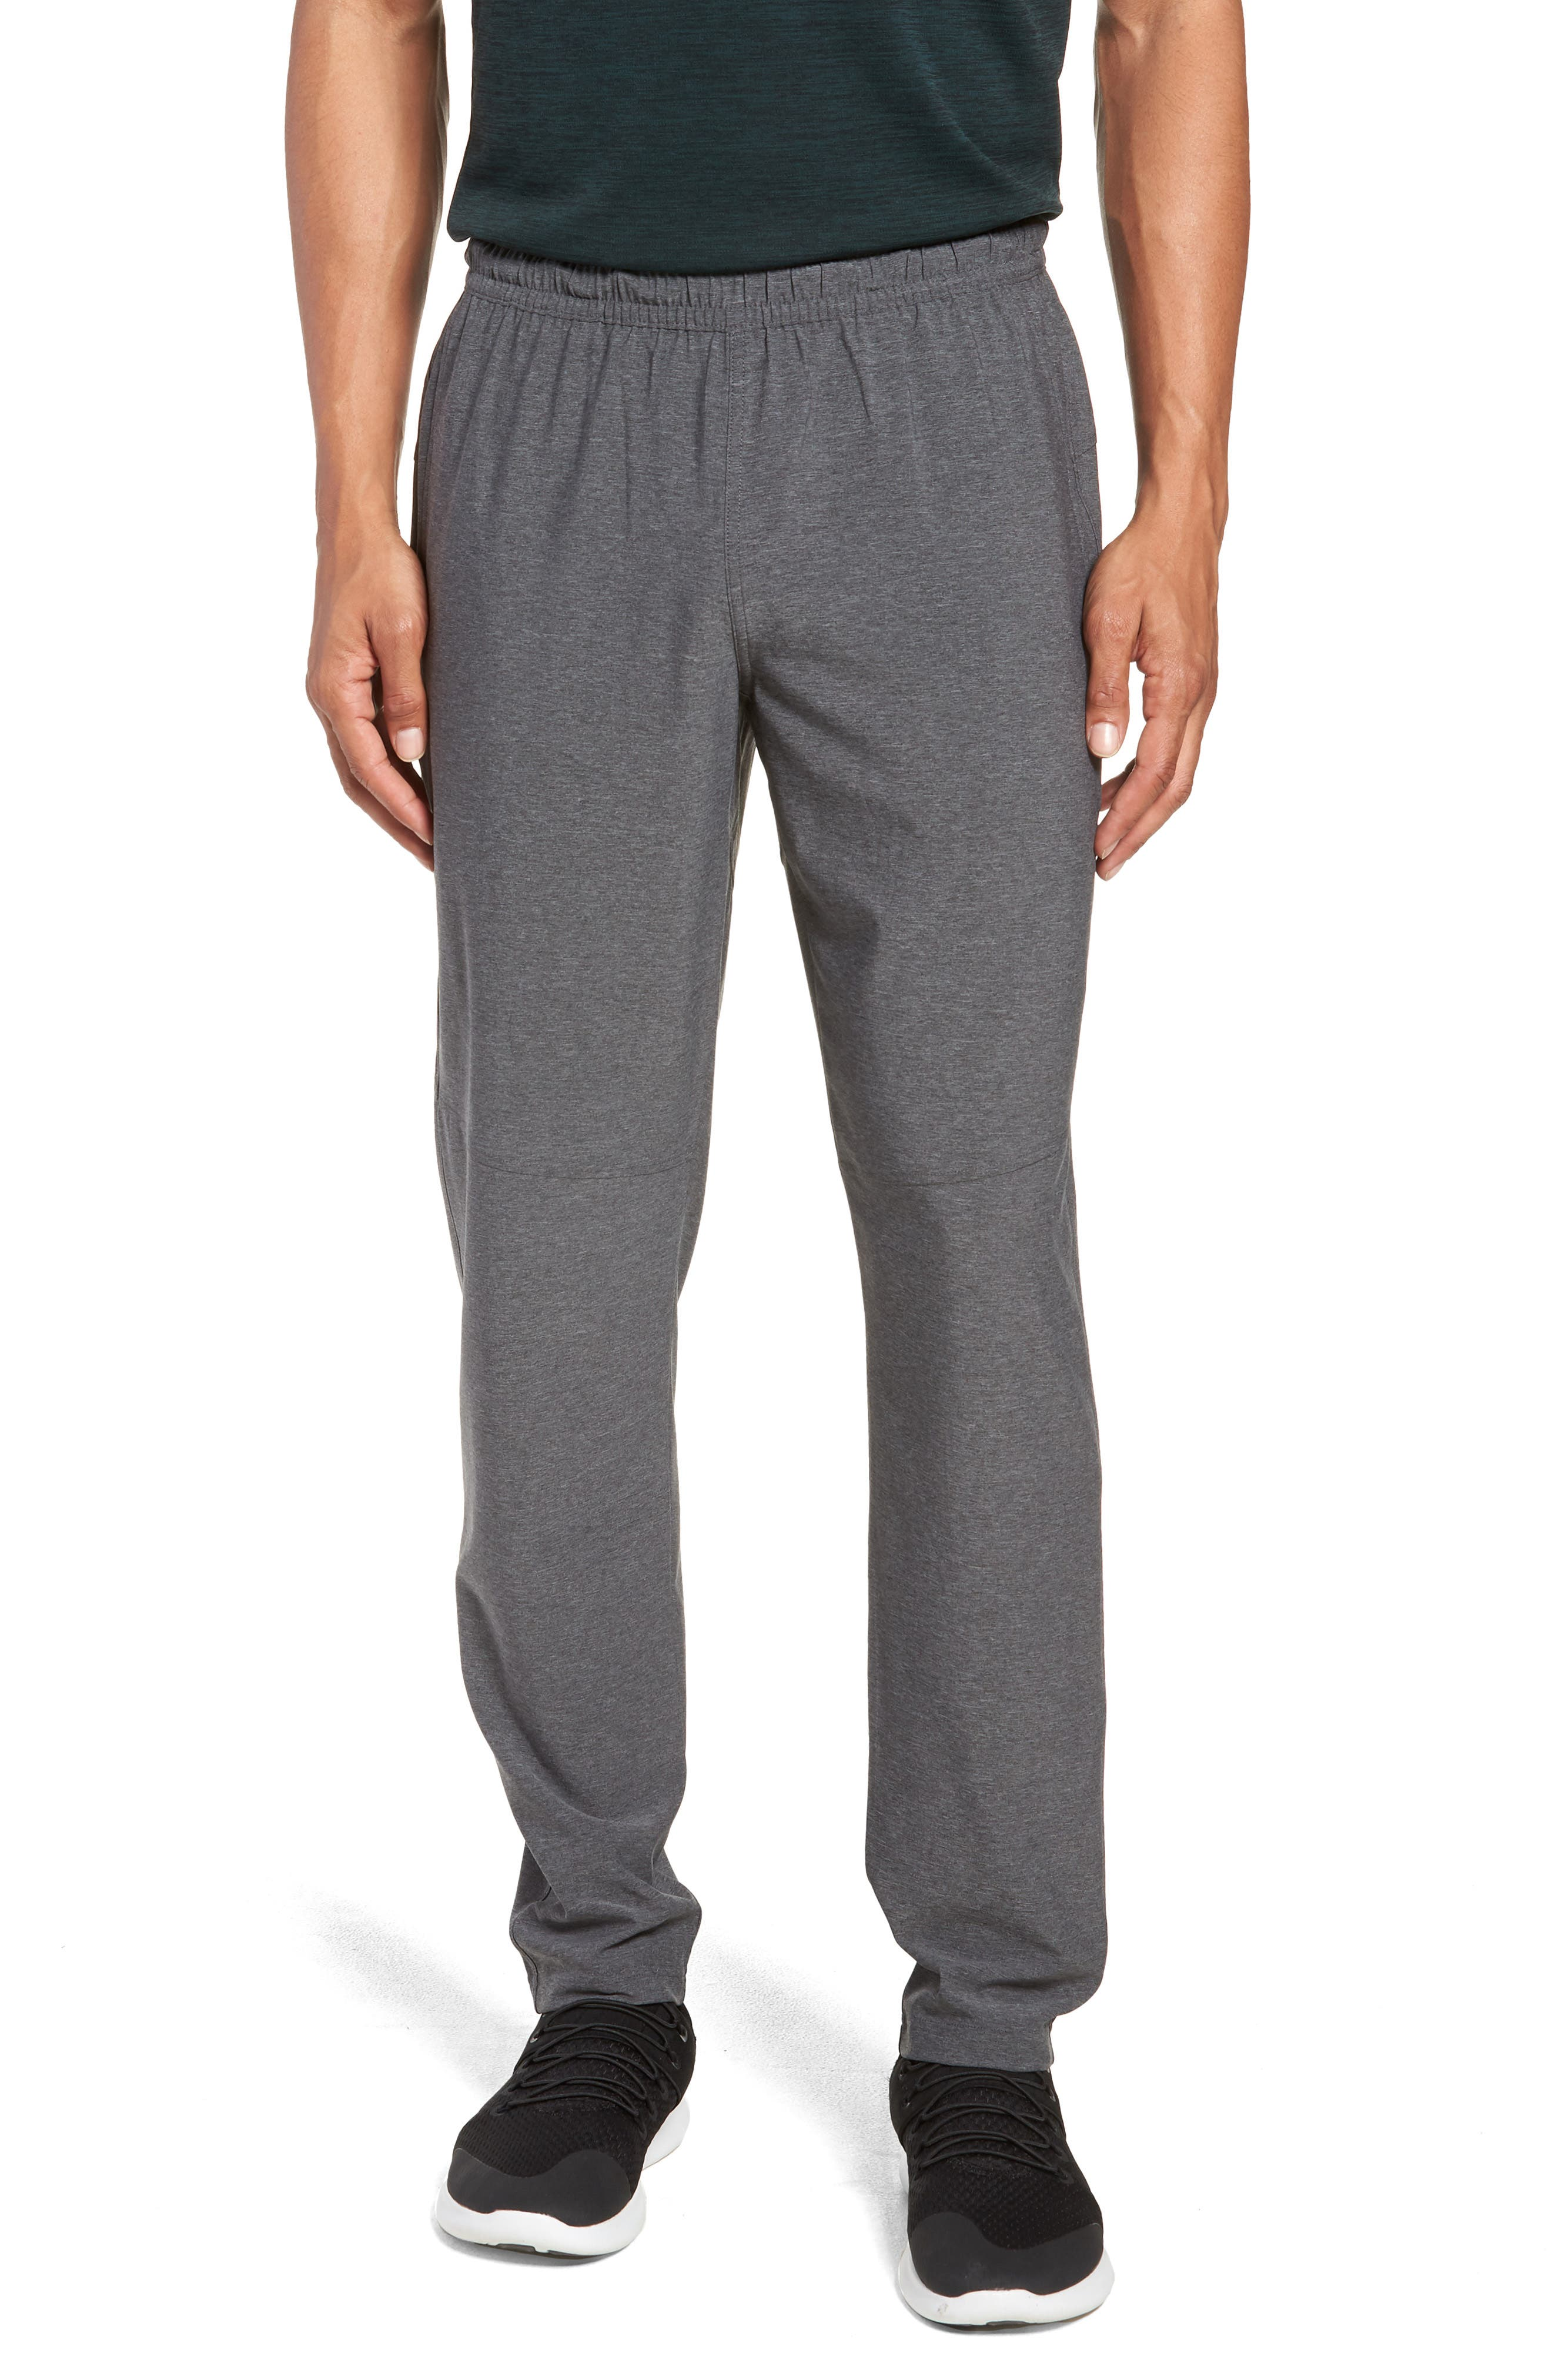 ZELLA Tapered Stretch Track Pants, Main, color, GREY OBSIDIAN MELANGE